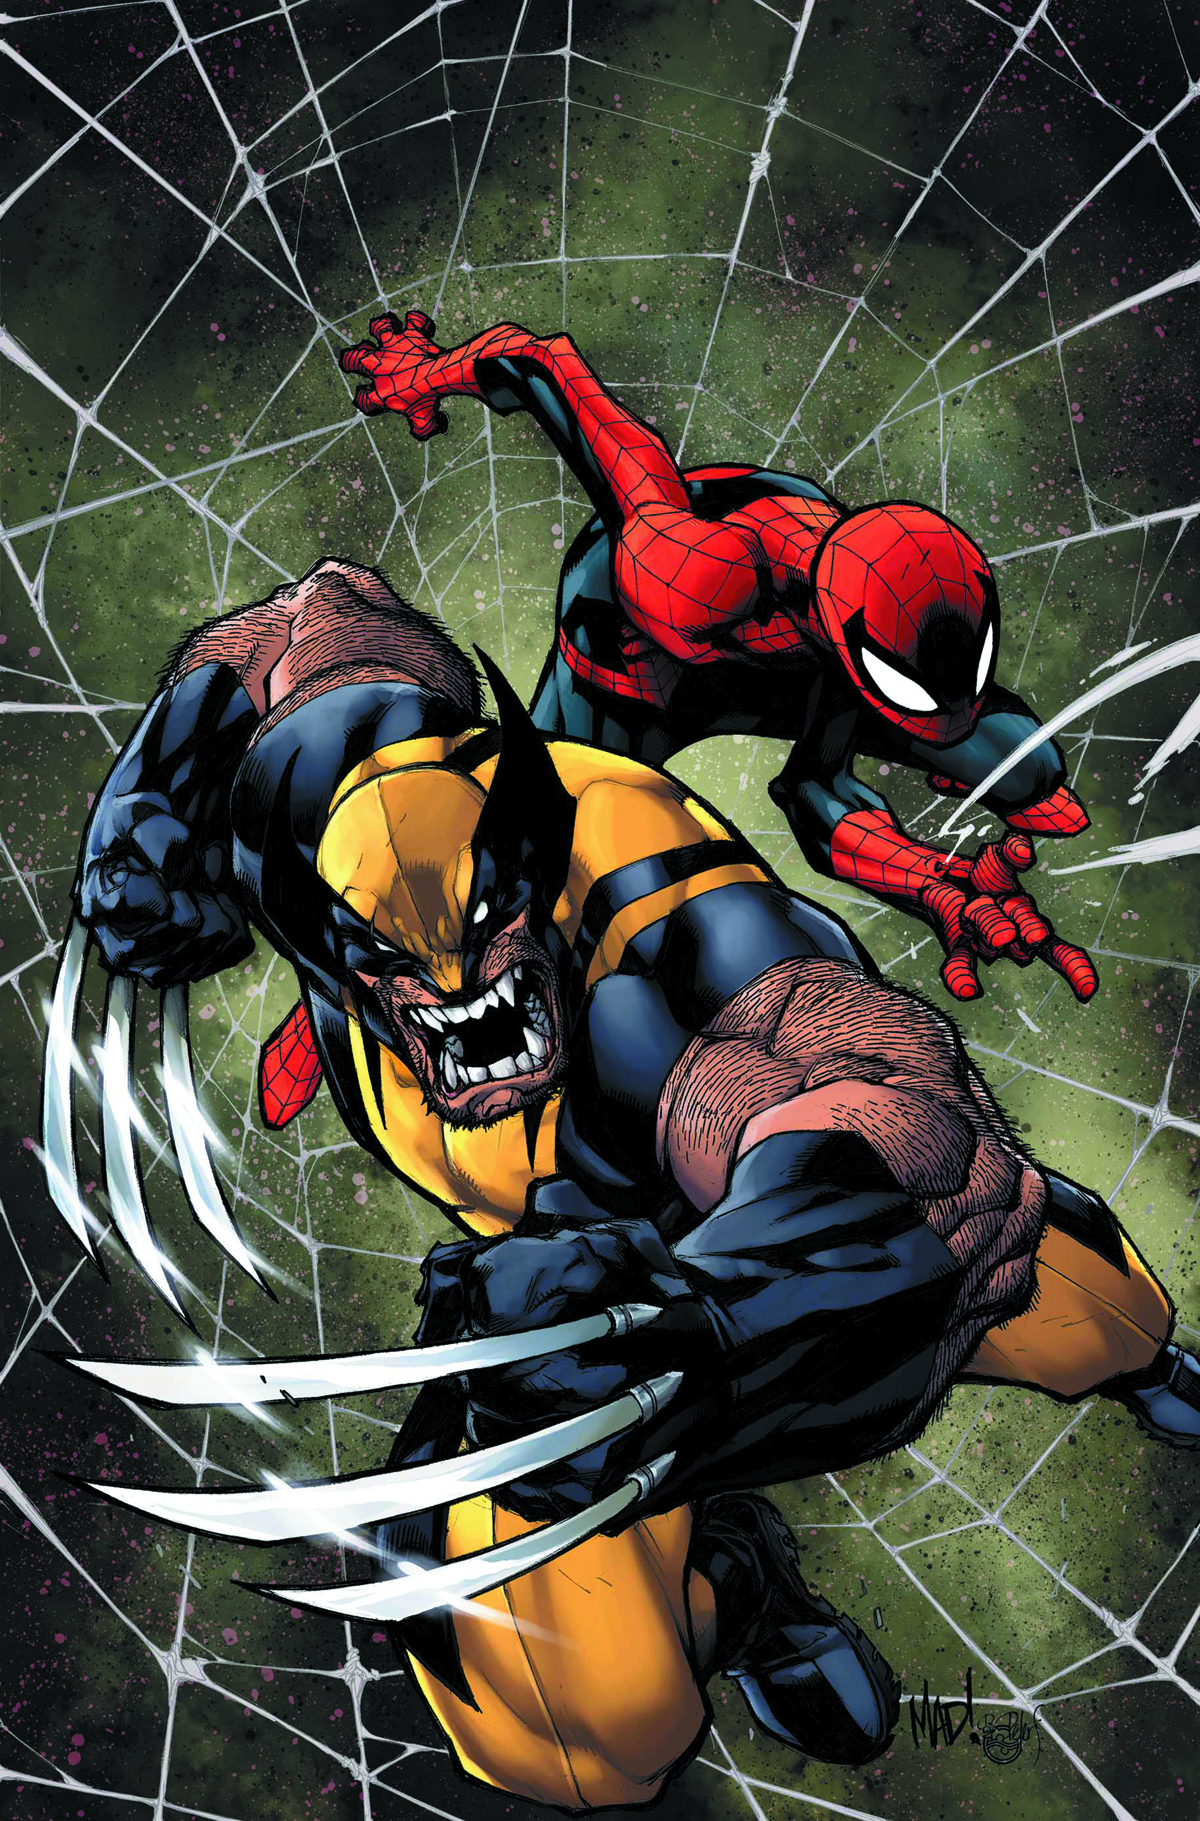 SAVAGE WOLVERINE SPIDER-MAN BY MADUREIRA POSTER